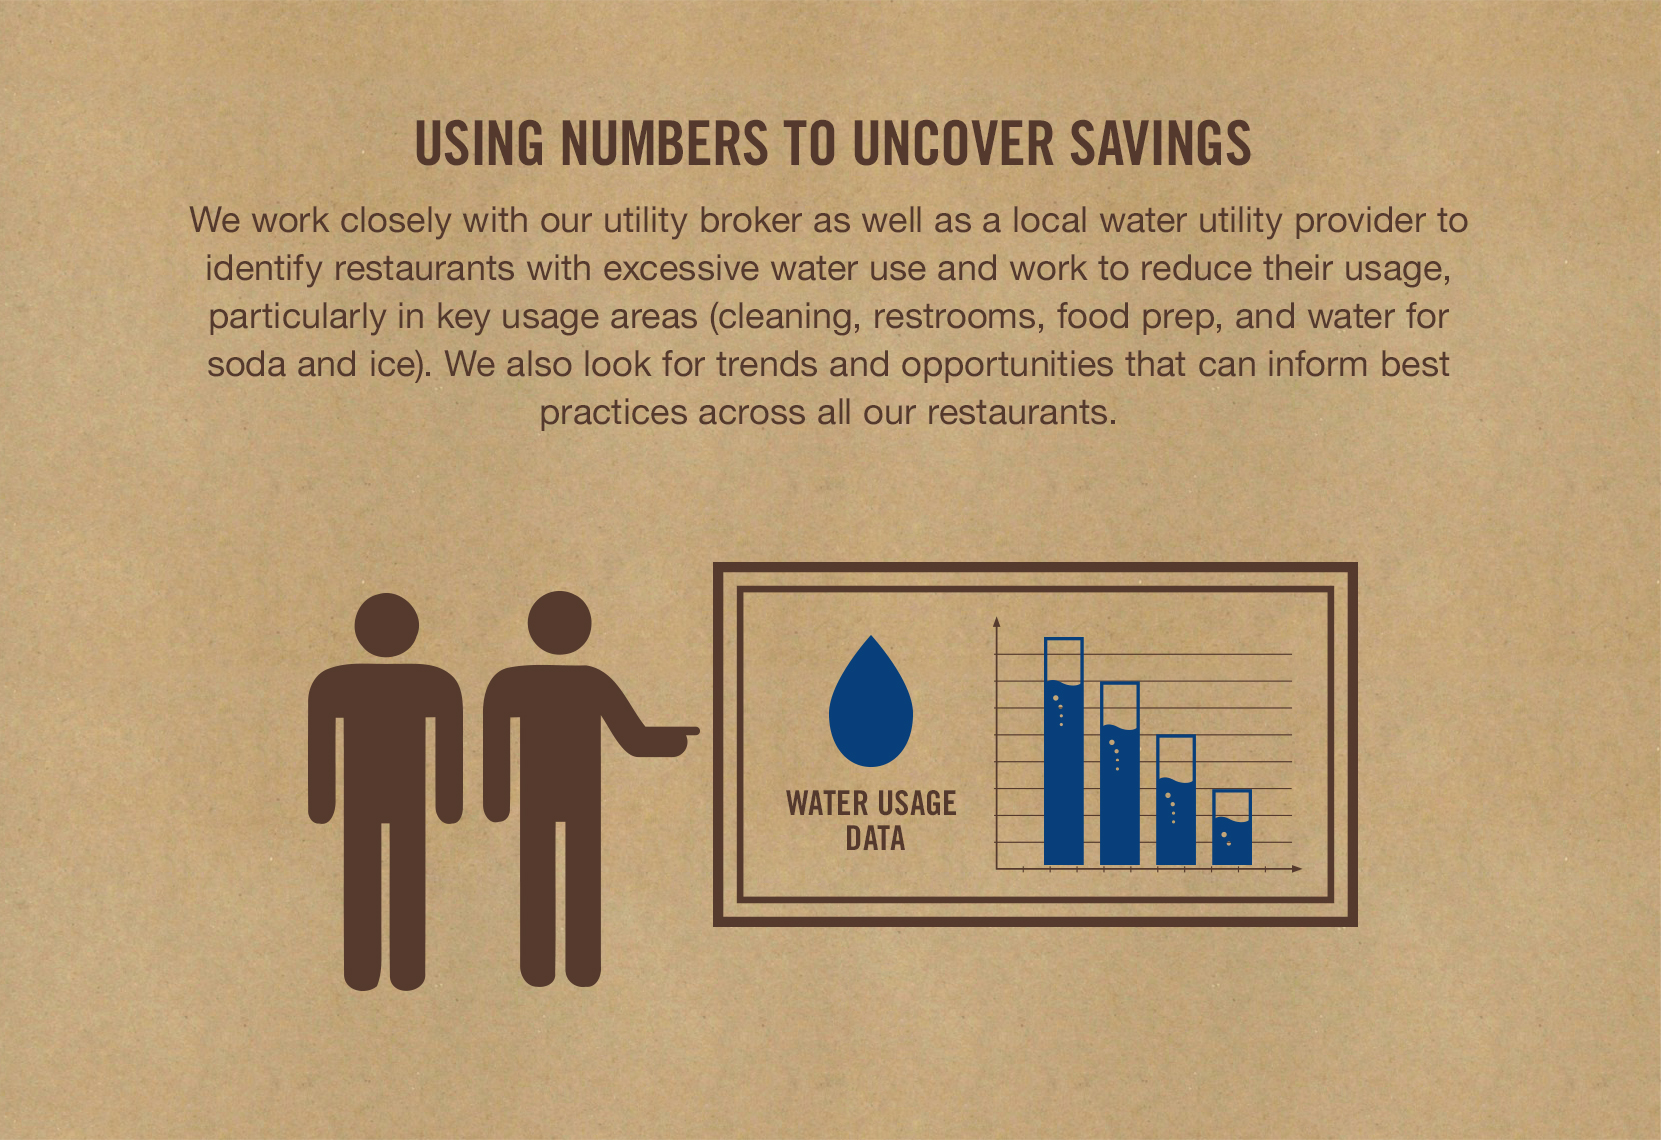 Using numbers to uncover savings  We work closely with our utility broker as well as a local water utility provider to identify restaurants with excessive water use and work to reduce their usage, particularly in key usage areas (cleaning, restrooms, foos prep, and water for soda and ice)/ we also look for trends and opportunities that can inform best practices across all our restaurants.